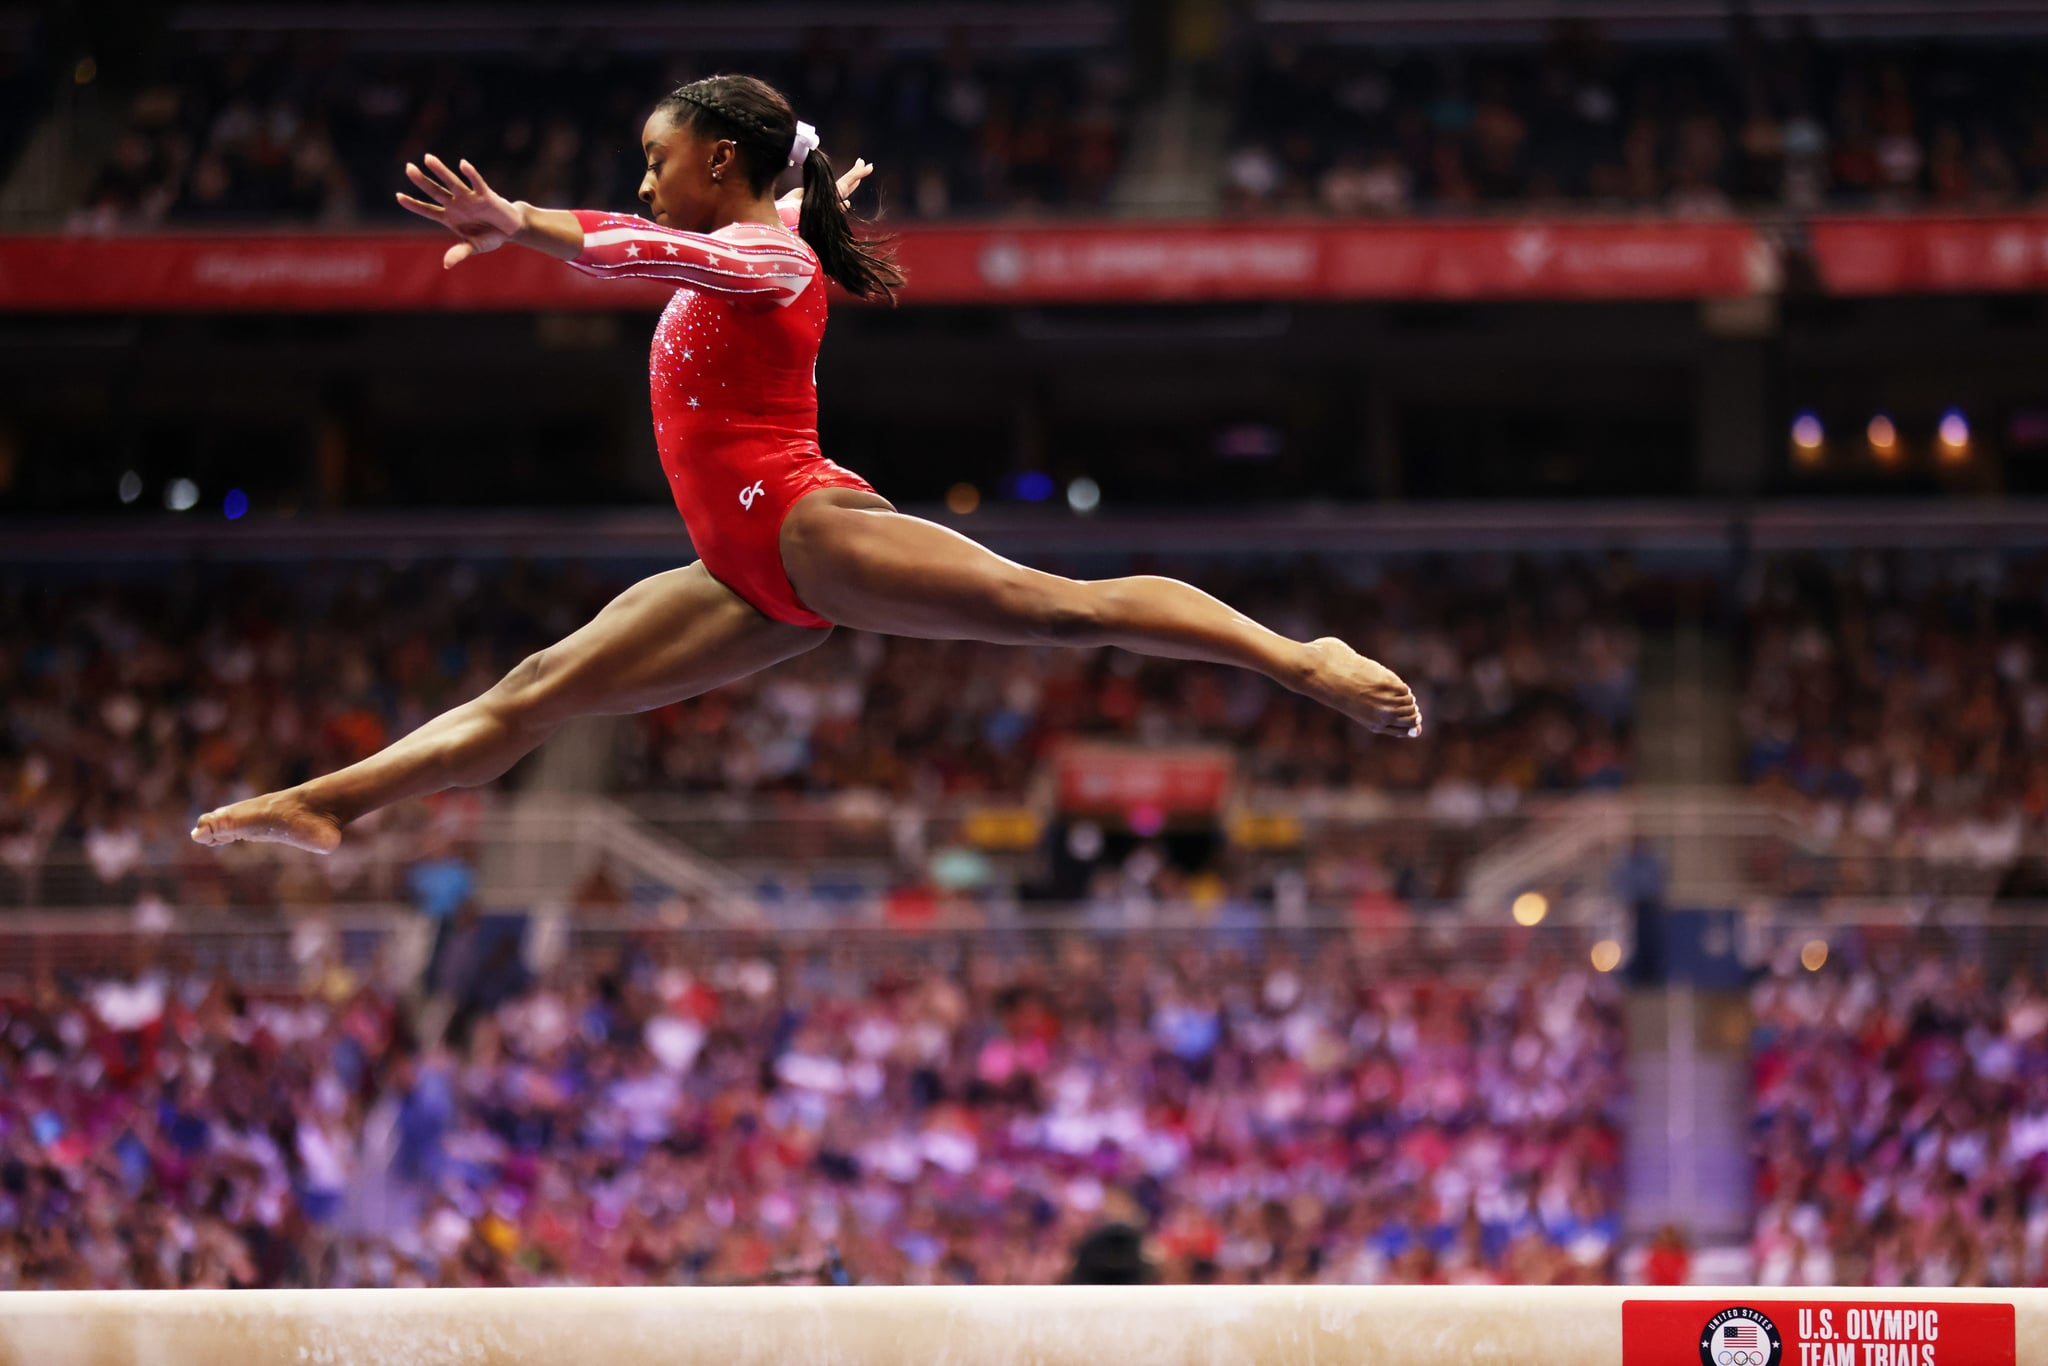 ST LOUIS, MISSOURI - JUNE 27: Simone Biles competes on the balance beam during the Women's competition of the 2021 U.S. Gymnastics Olympic Trials at America's Centre on June 27, 2021 in St Louis, Missouri. (Photo by Jamie Squire/Getty Images)